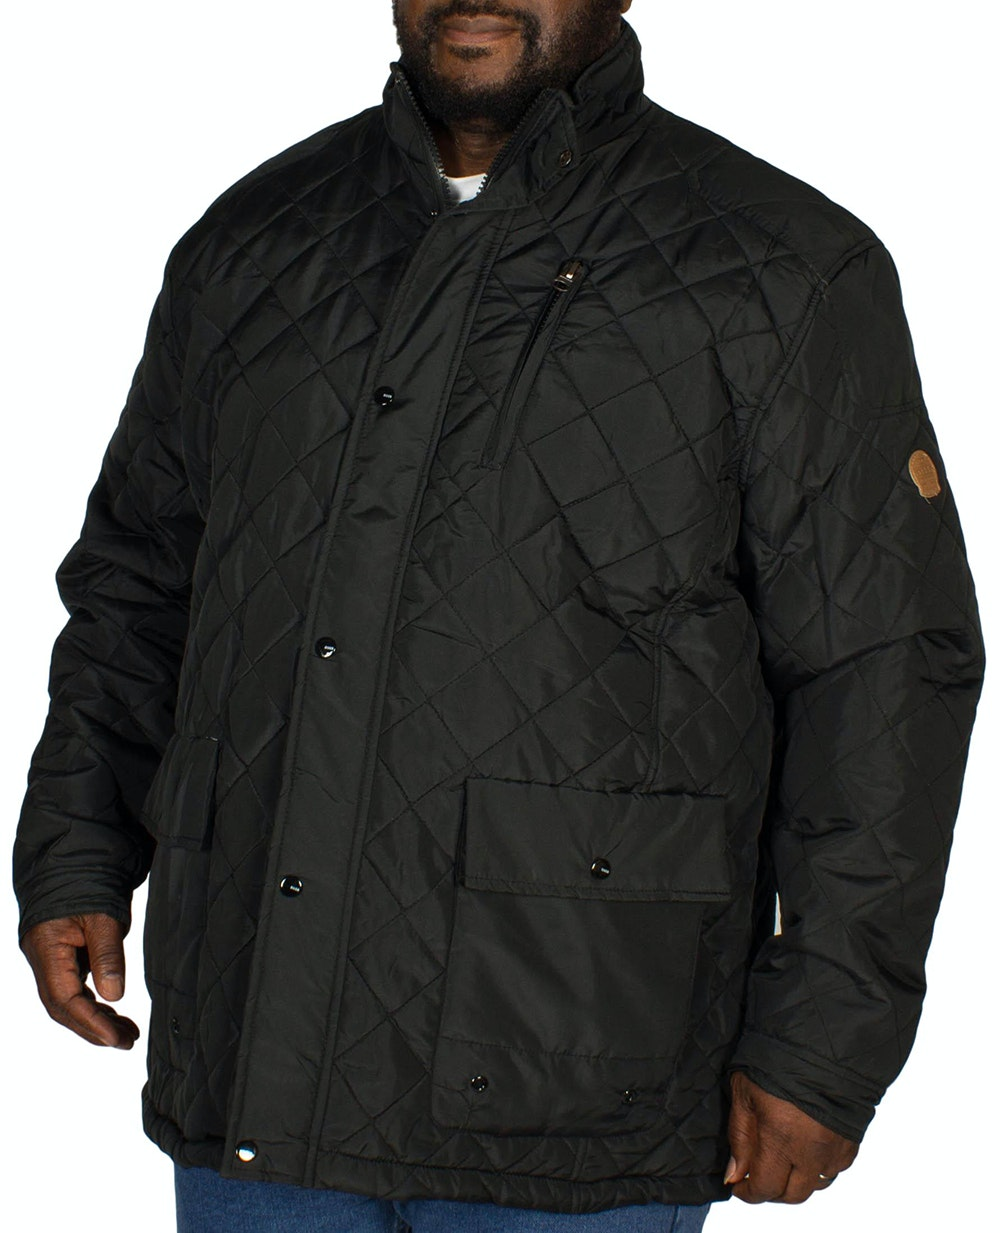 D555 Justin Quilted Jacket Black Tall